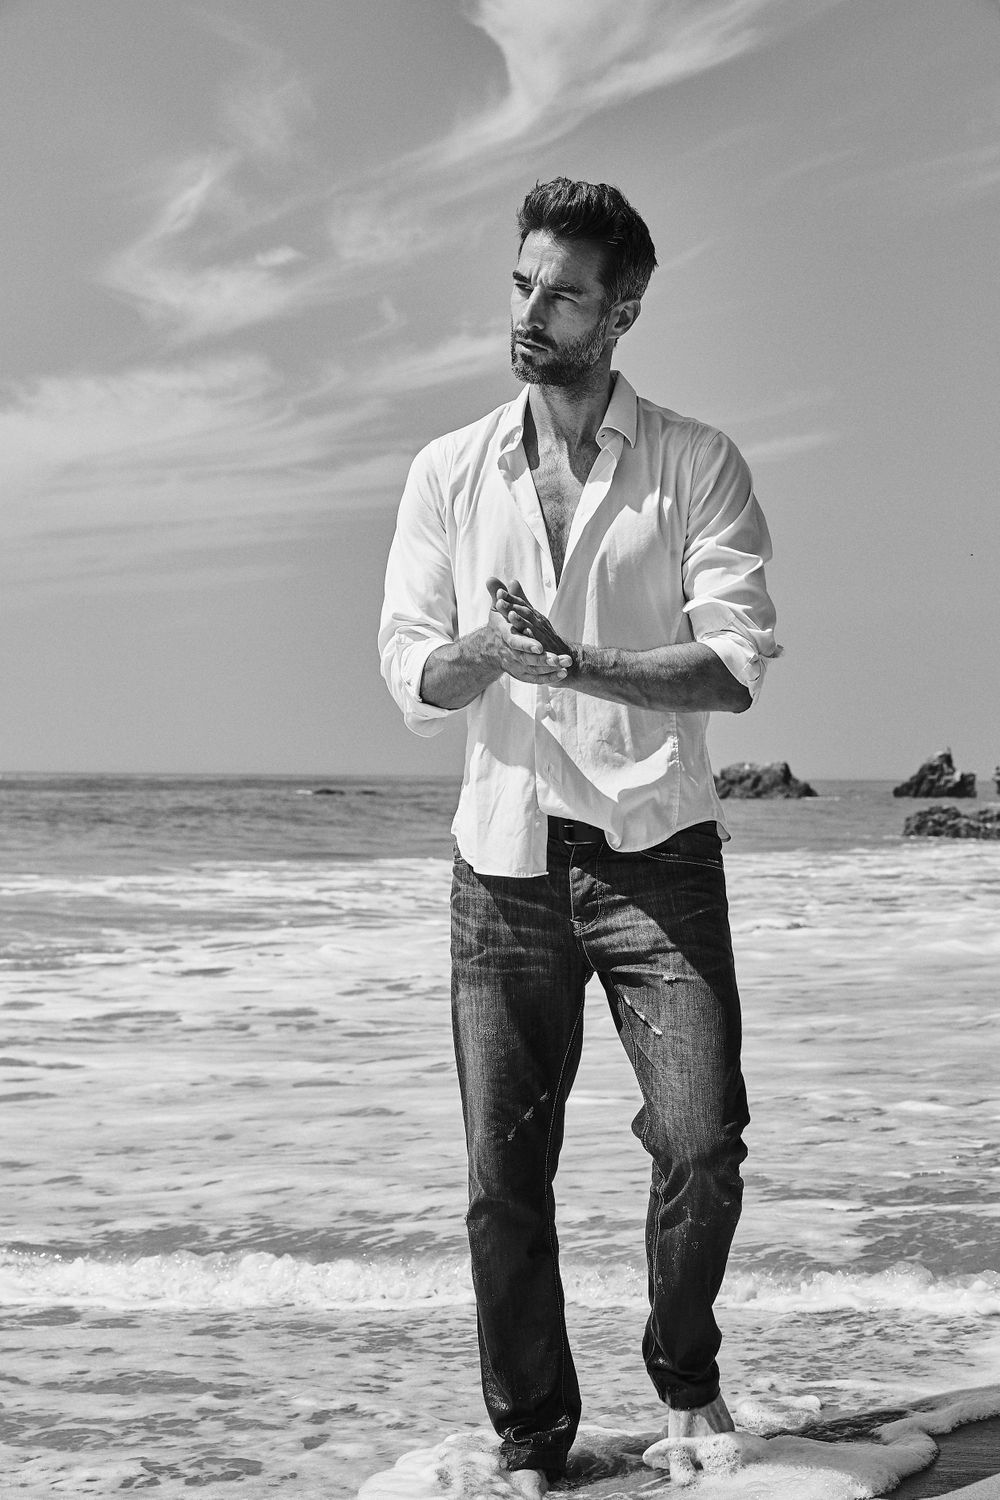 Model Colin Devitt from LA Models wearing denim jeans and white buttoned shirt El Matador State Beach